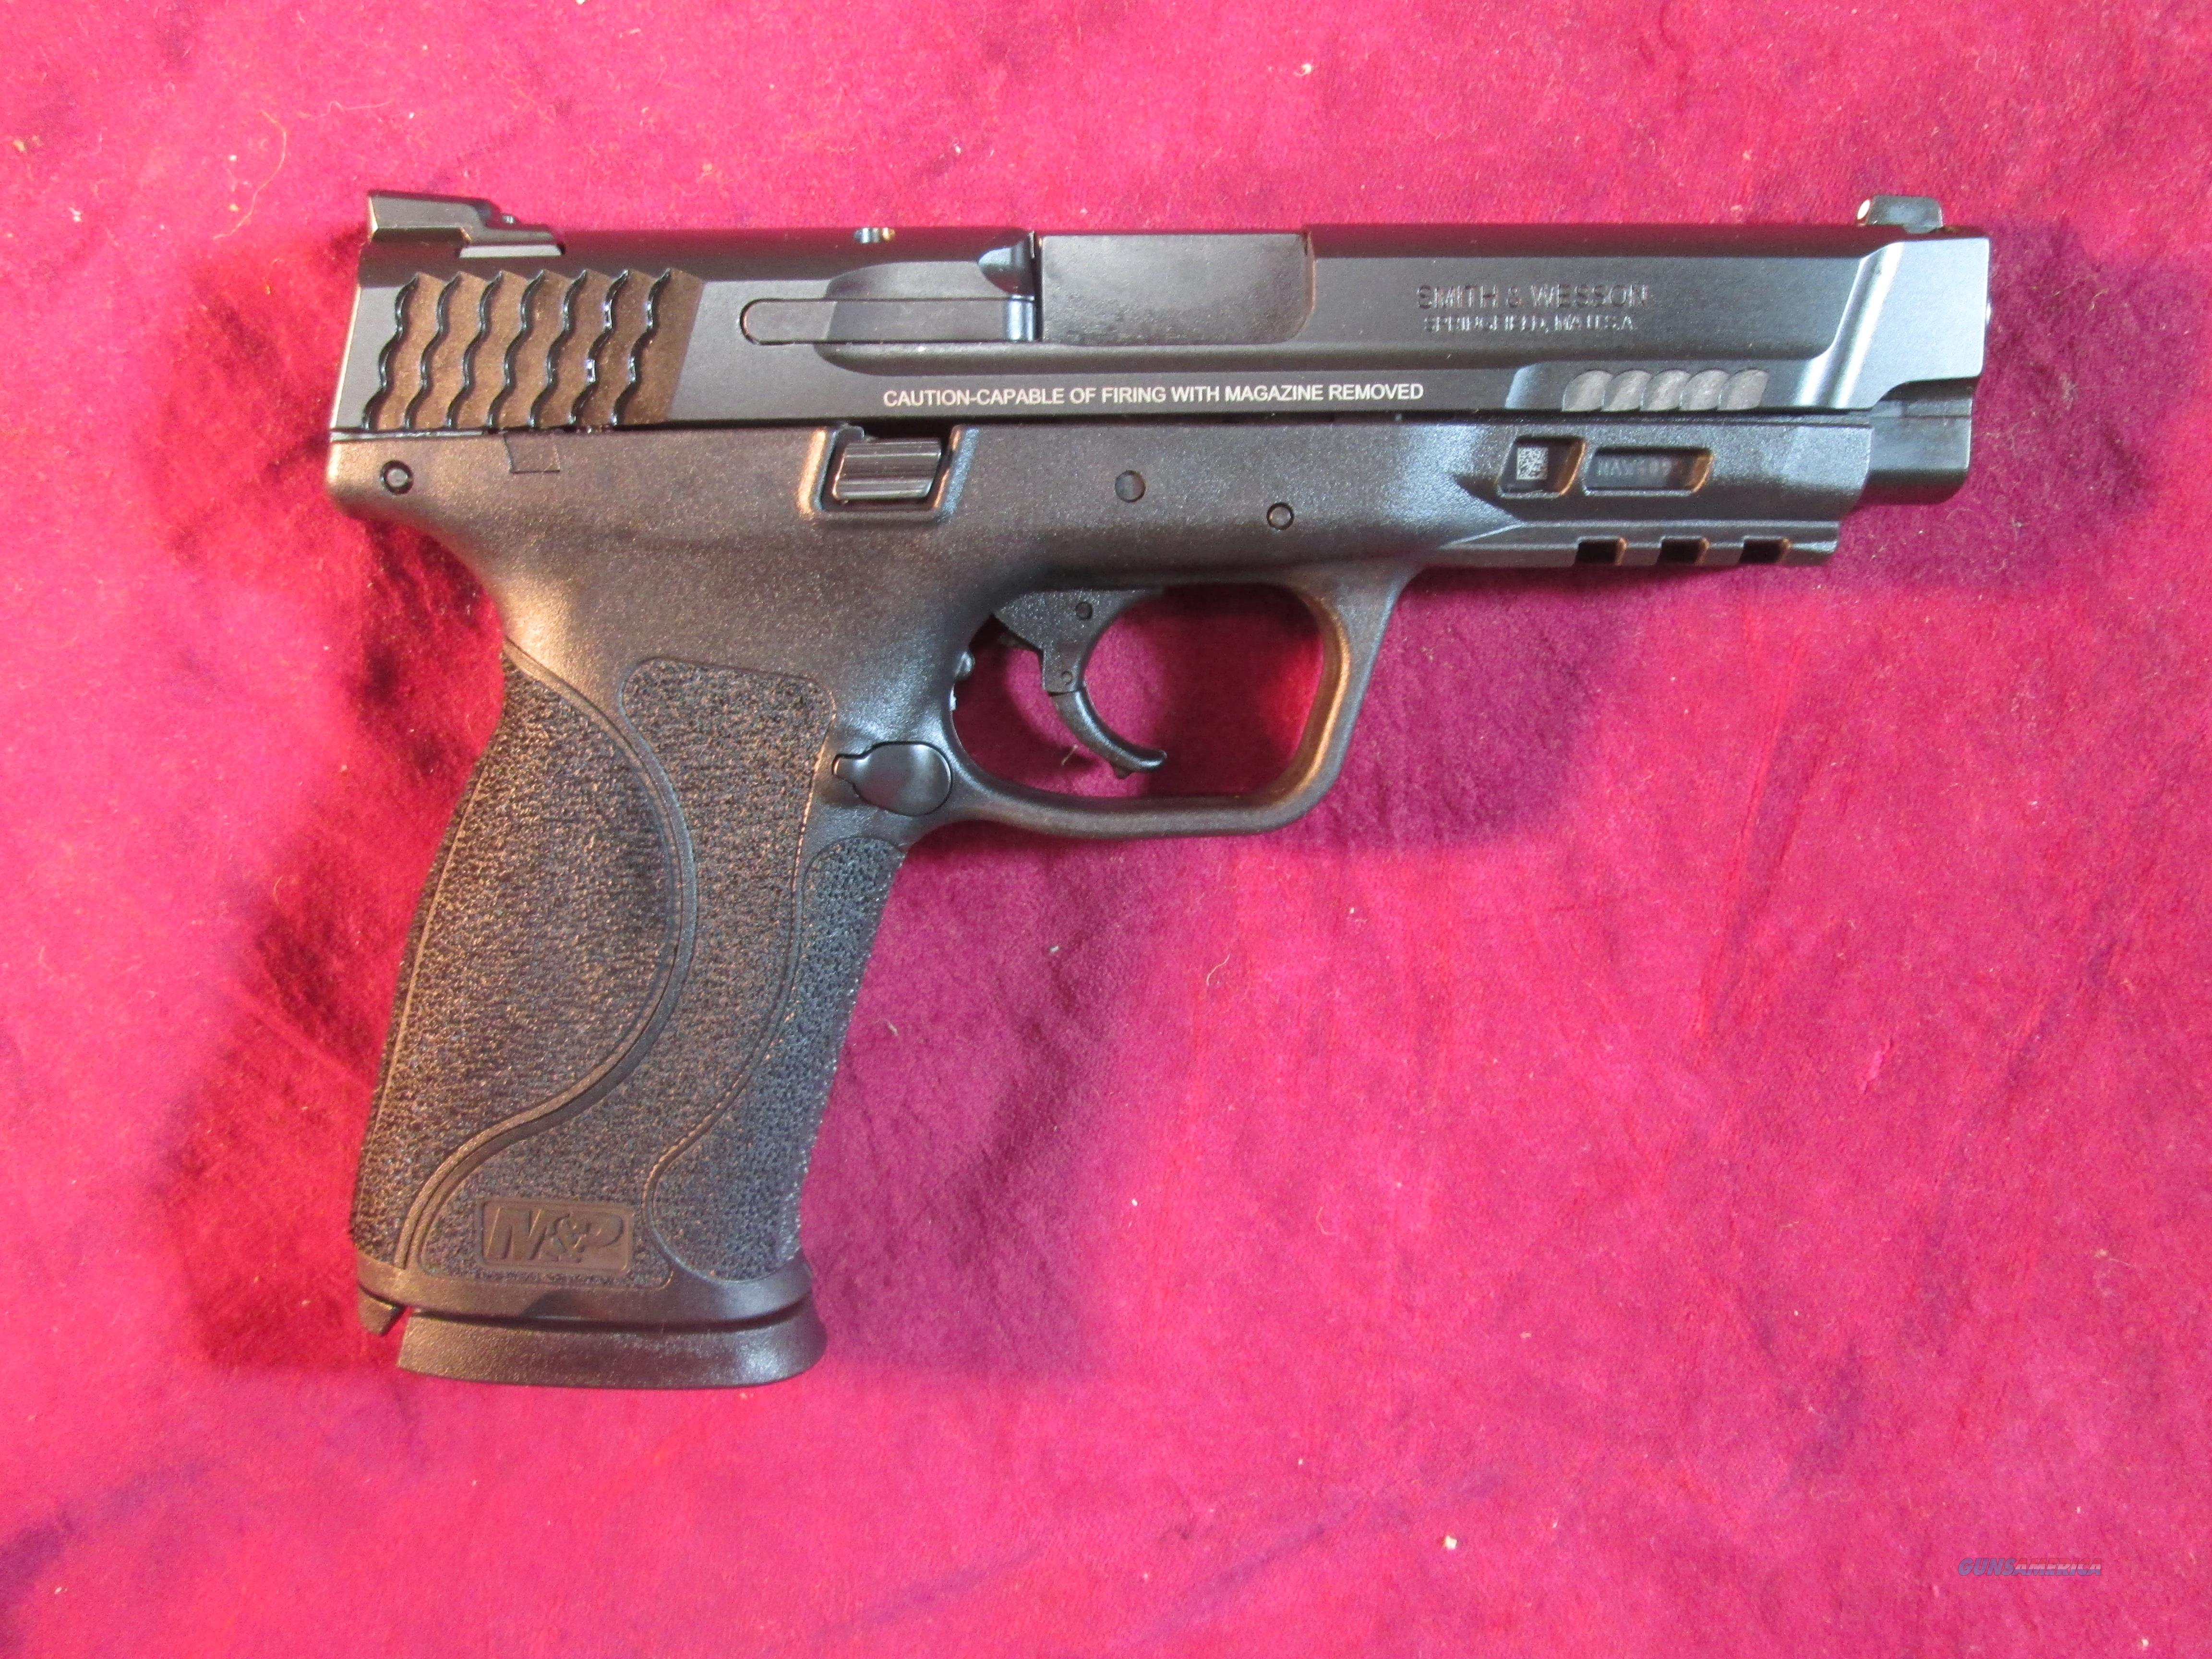 SMITH AND WESSON M&P 2.0 45ACP BLACK NO SAFETY NEW (11523)  Guns > Pistols > Smith & Wesson Pistols - Autos > Polymer Frame